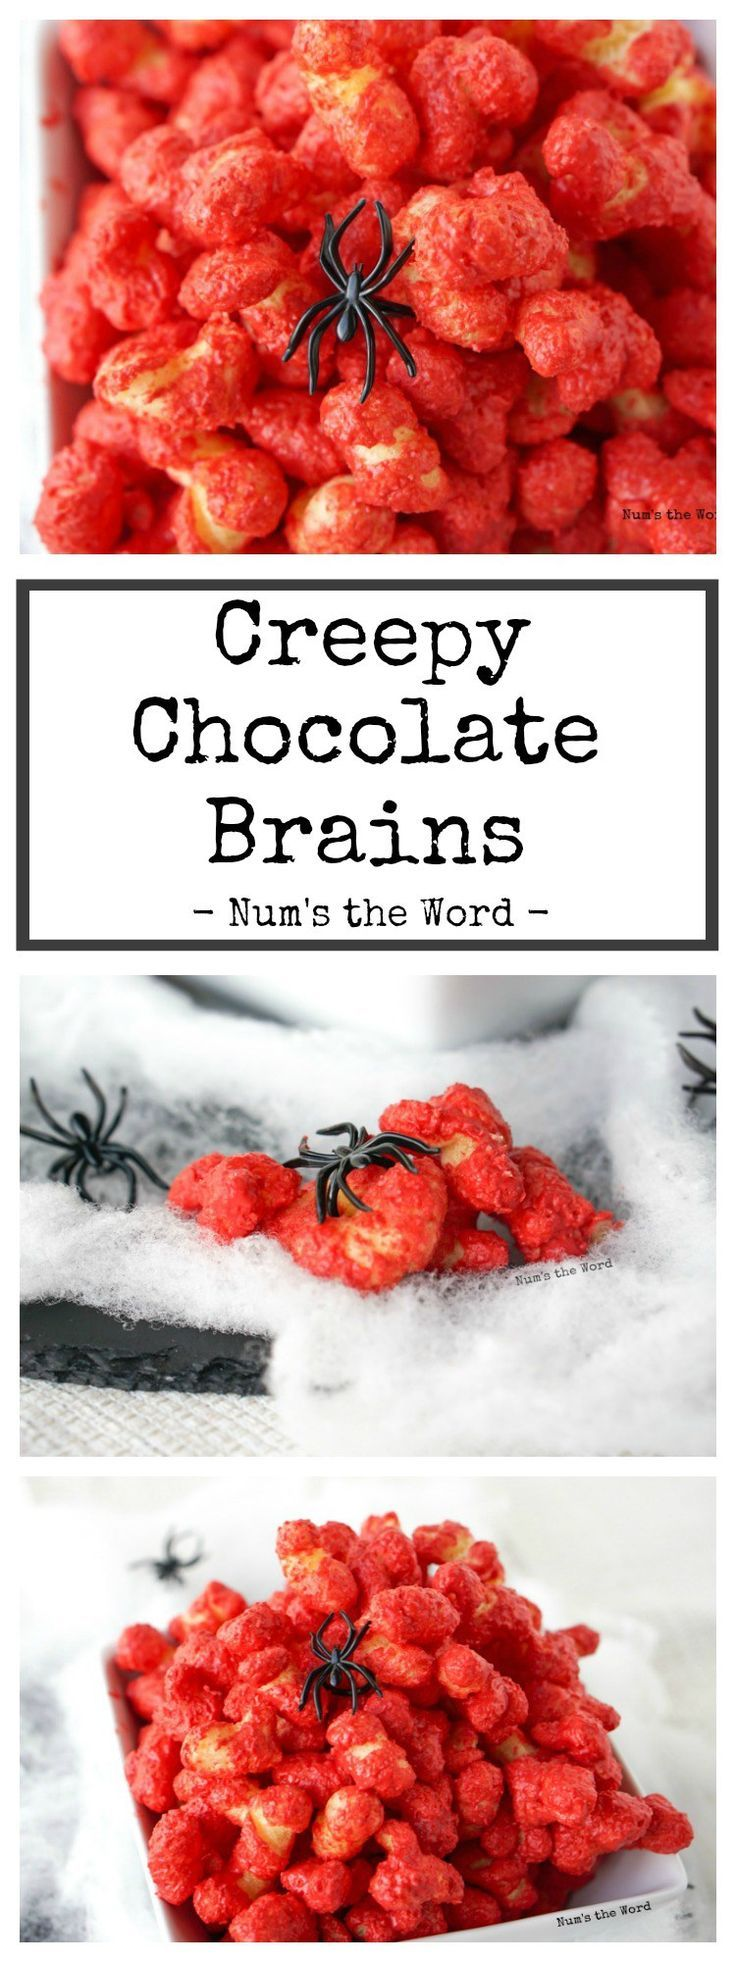 Creepy Chocolate Brains – A quick and easy 10 minute treat that is sure to be spooky and delicious! Red colored chocolate puffcorn is a favorite treat by all!